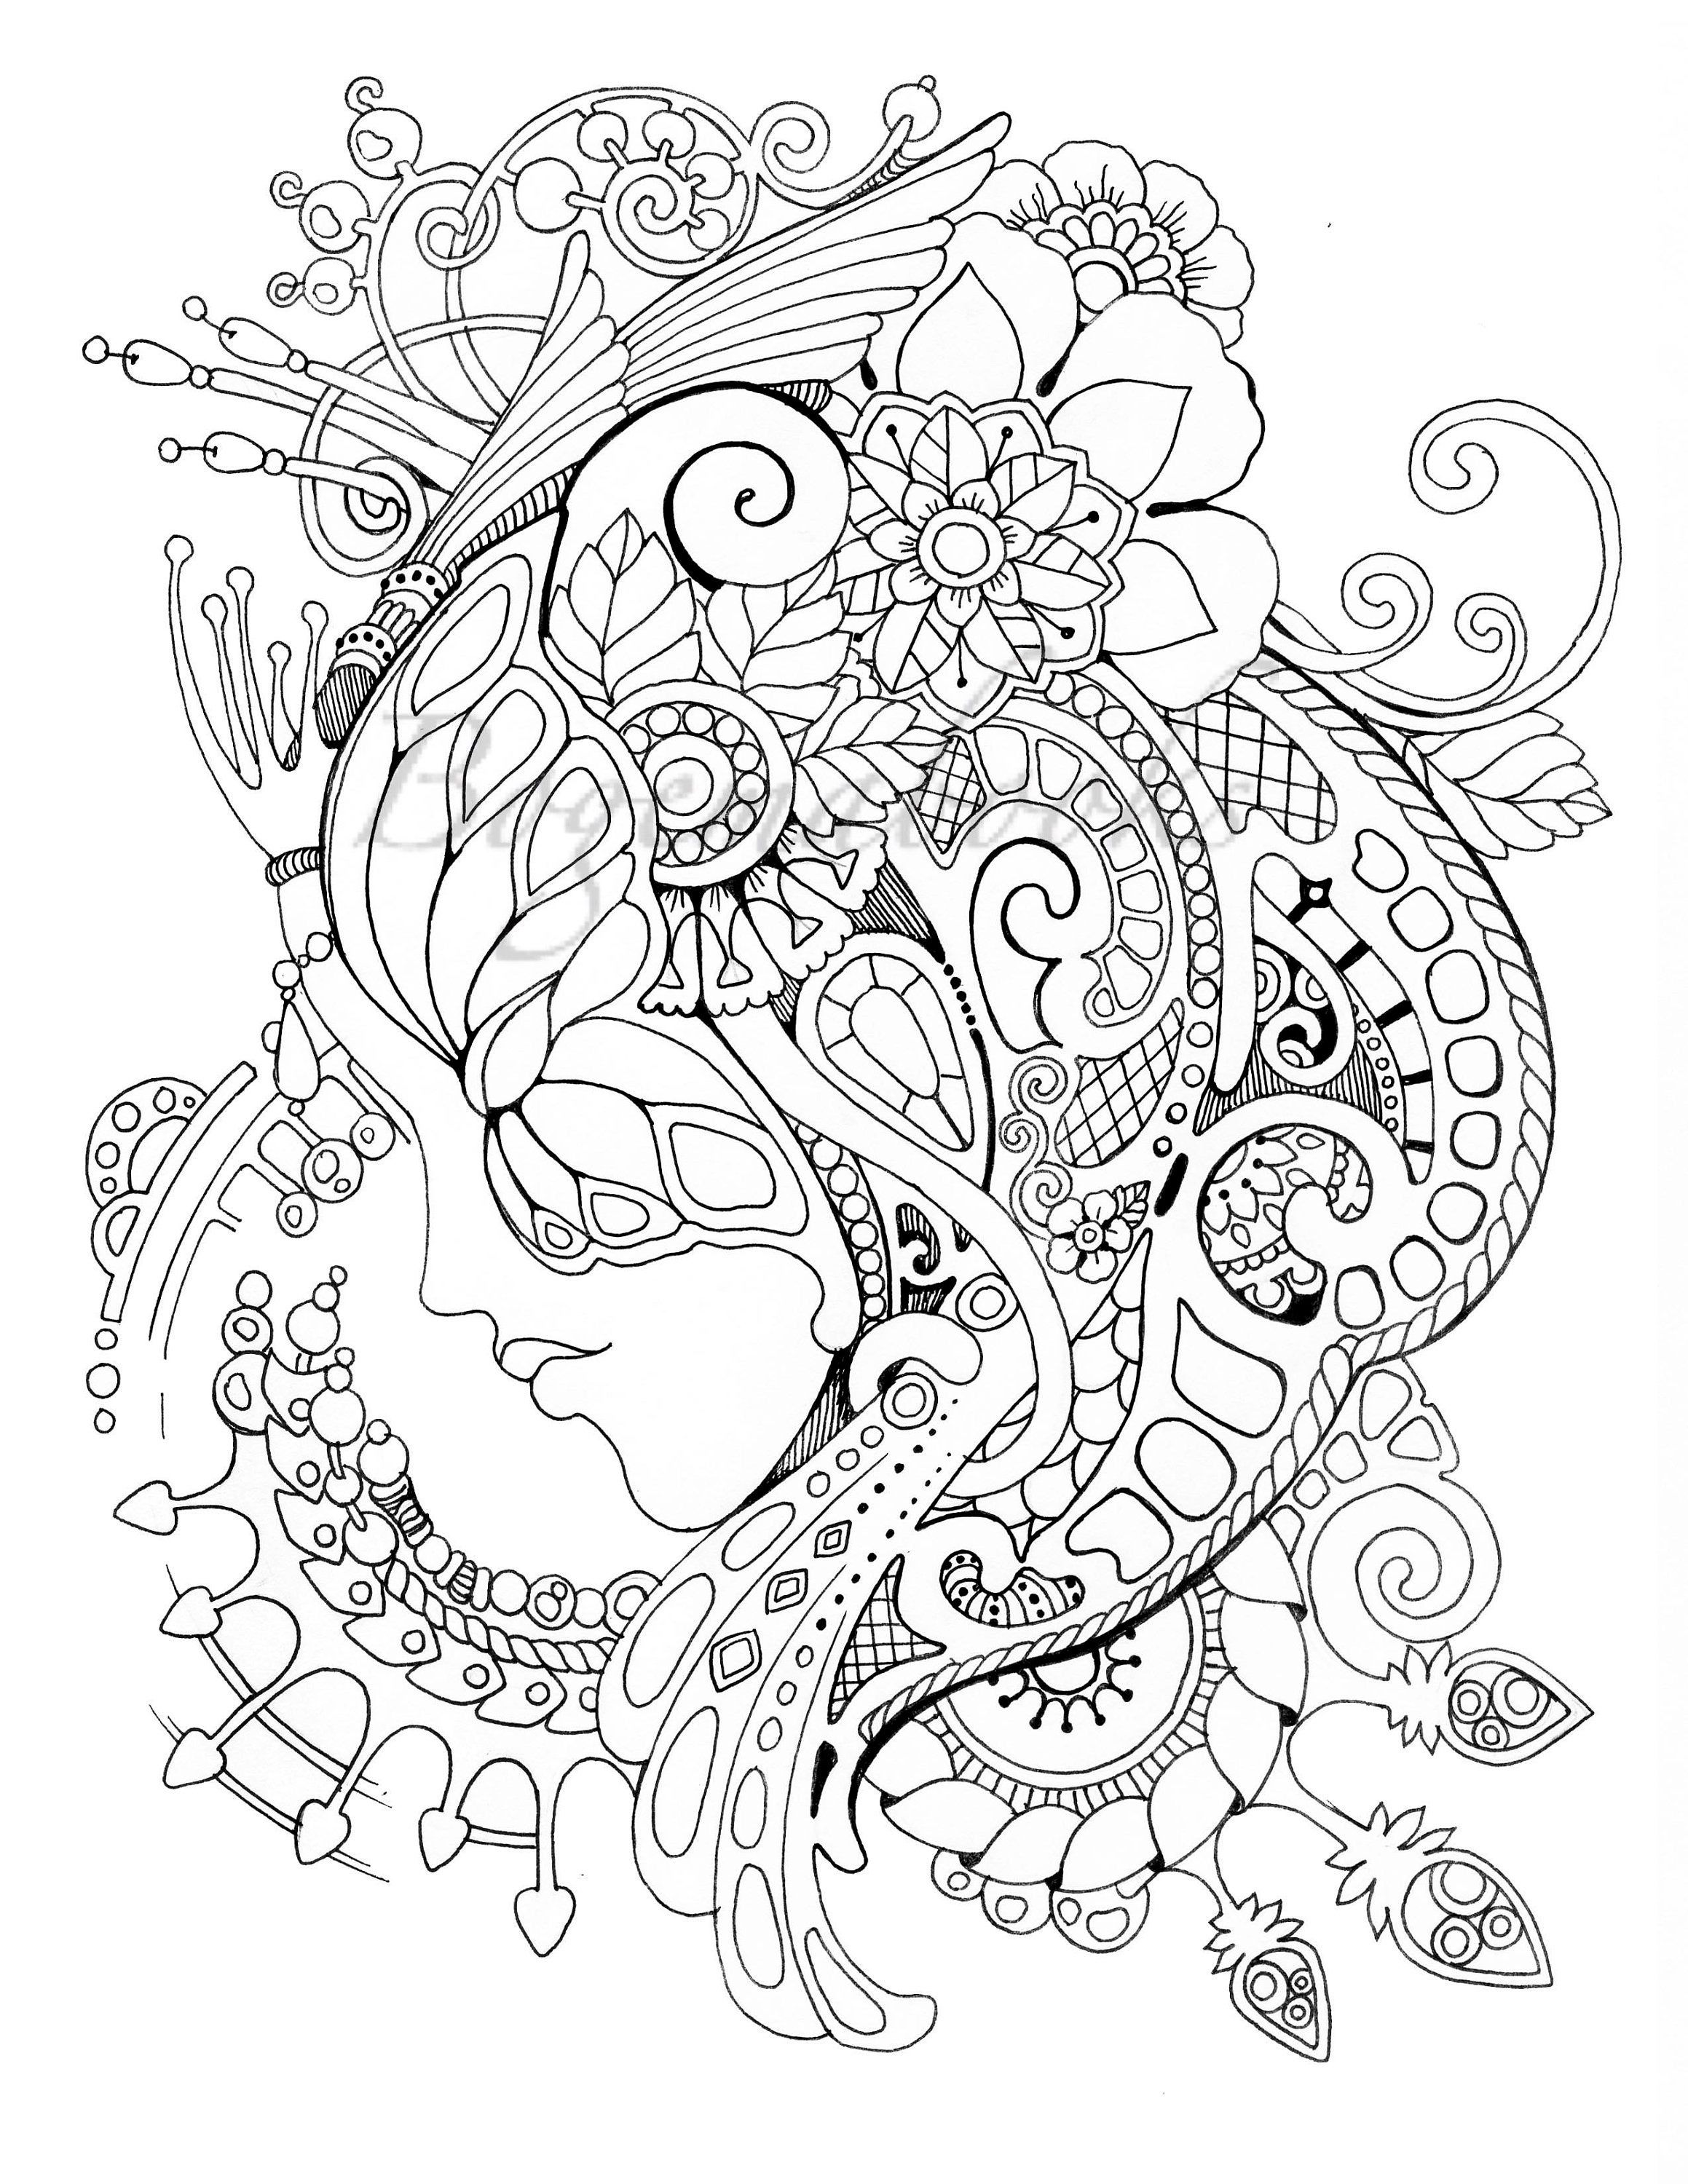 Magic Mask Adult Coloring Book Coloring Pages Pdf Coloring Pages